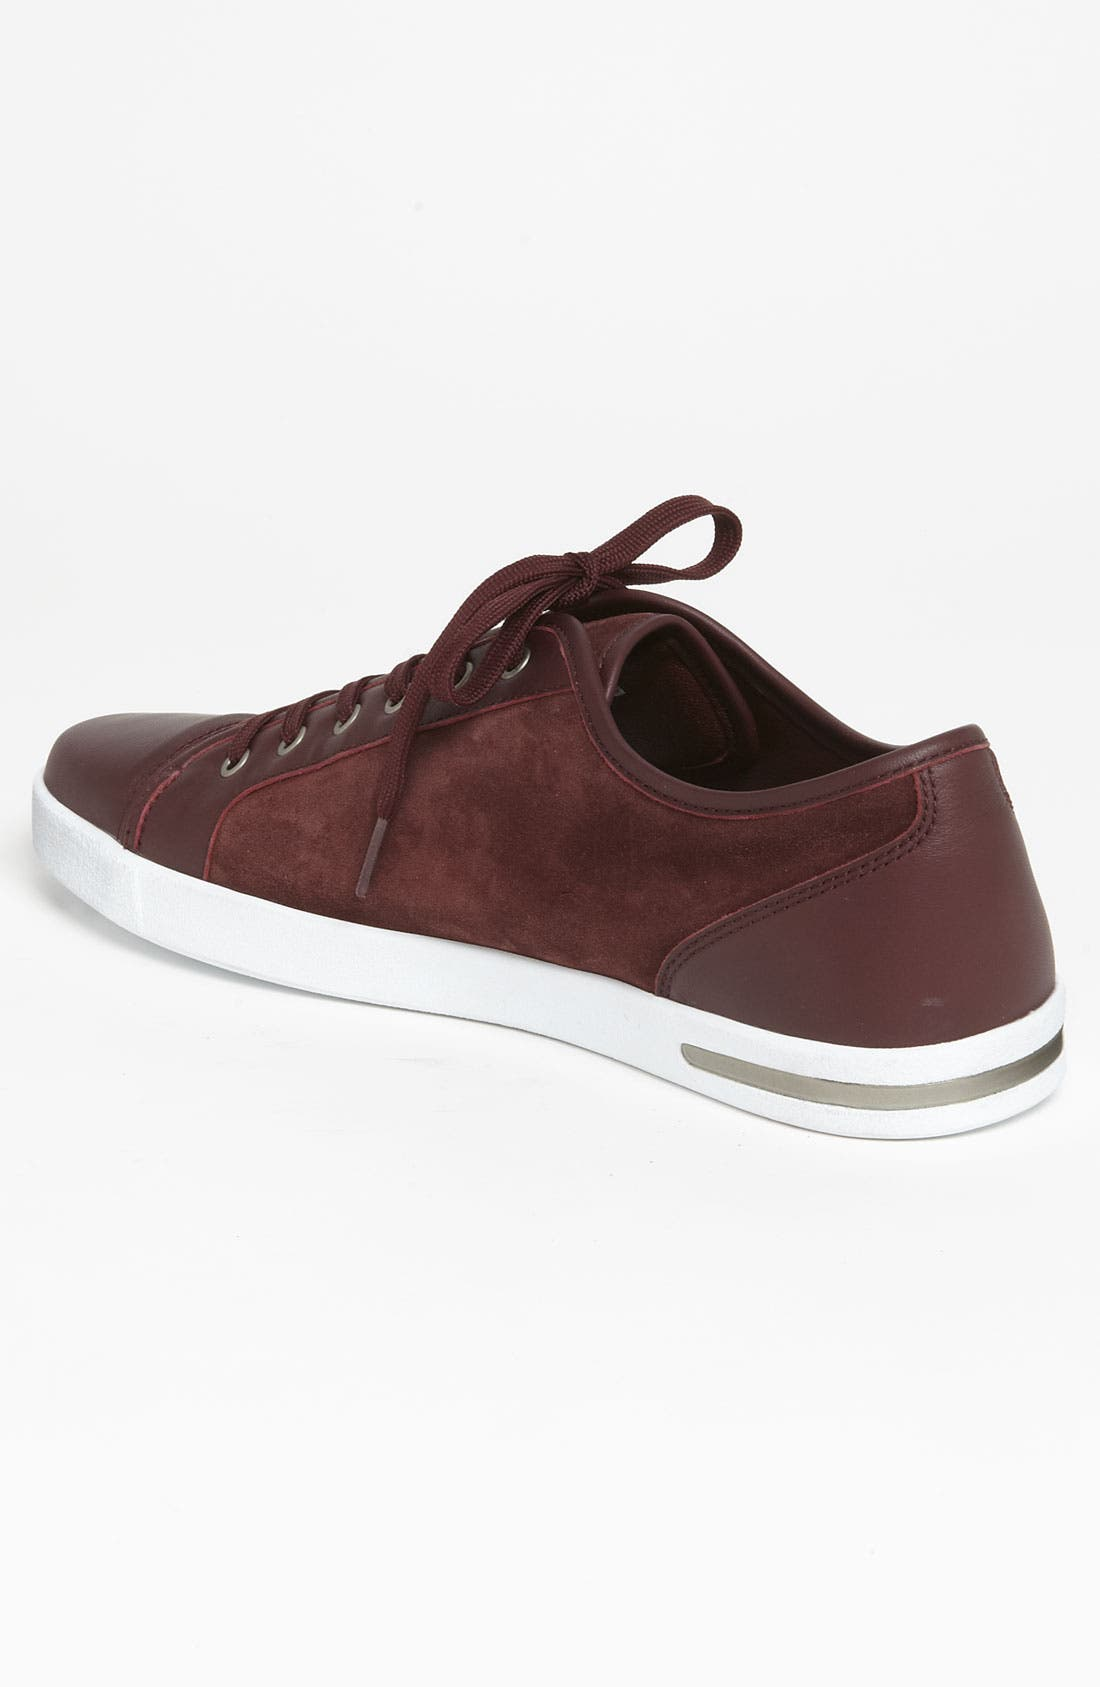 Suede Sneaker,                             Alternate thumbnail 3, color,                             601